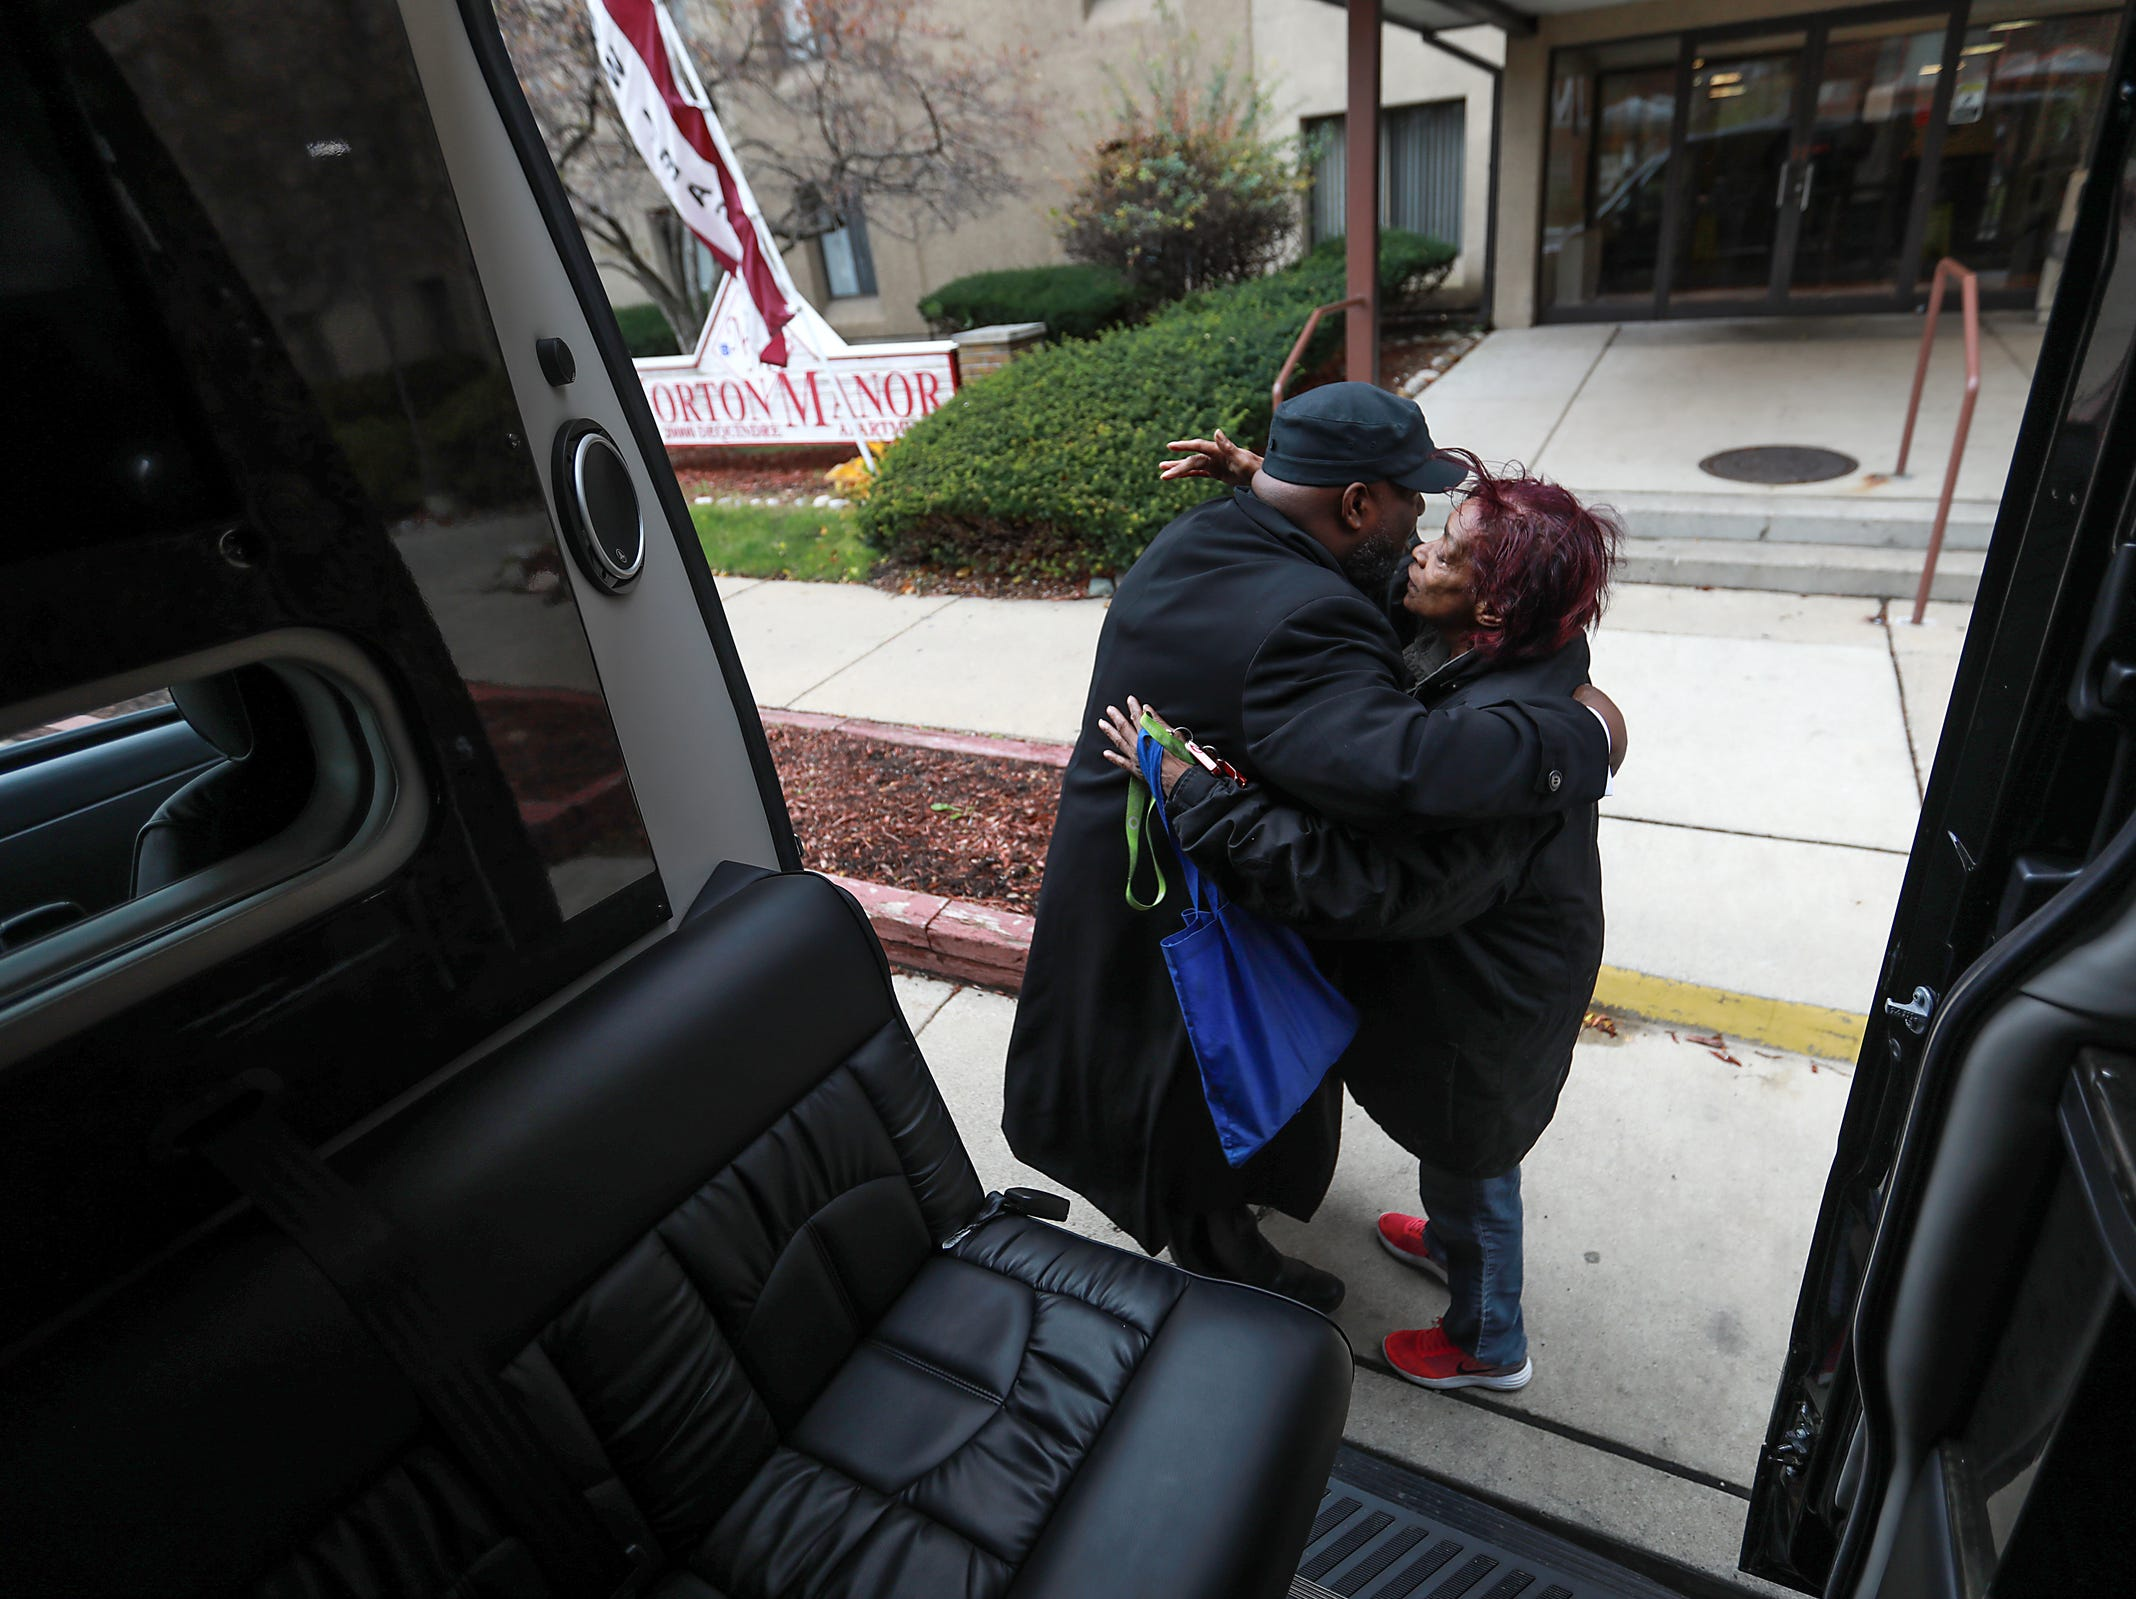 Calista Sanders, 73, of Detroit gives Pastor Terrell Jackson, 42, of Eastpointe, a hug she received a ride to the polls in a Mercedes limo bus, organized by Clora Funeral Home, for the midterm elections in Detroit on Tuesday, Nov. 6, 2018. Sanders said she always votes unless she can't get a ride to the polls.